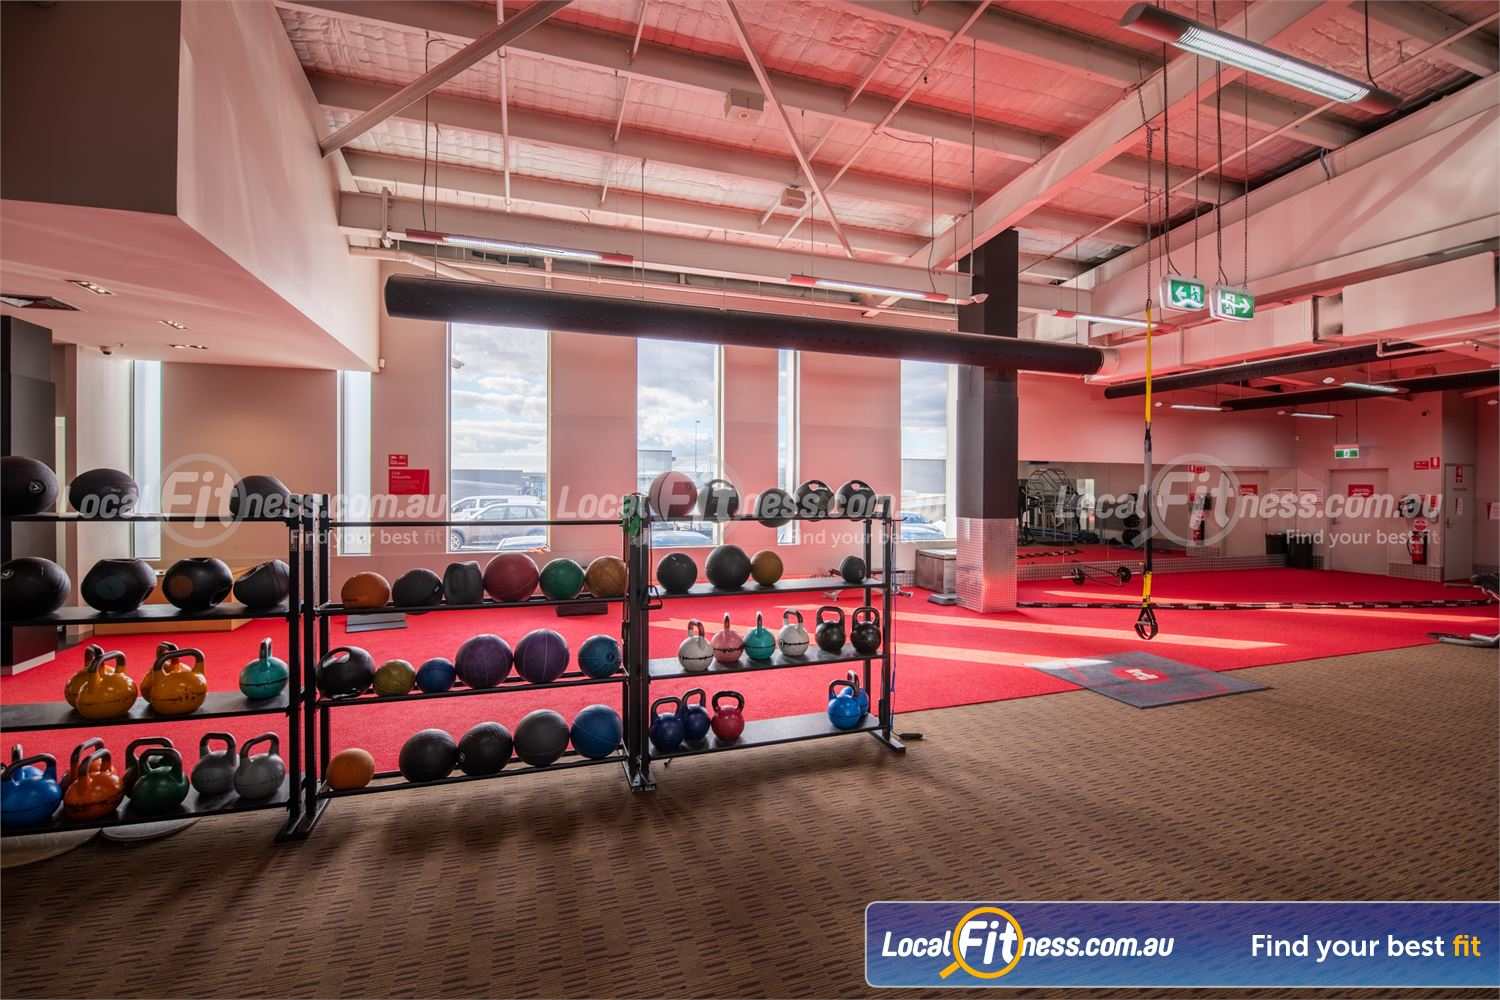 Fitness First Doncaster The dedicated freestyle functional area at Fitness First Doncaster.